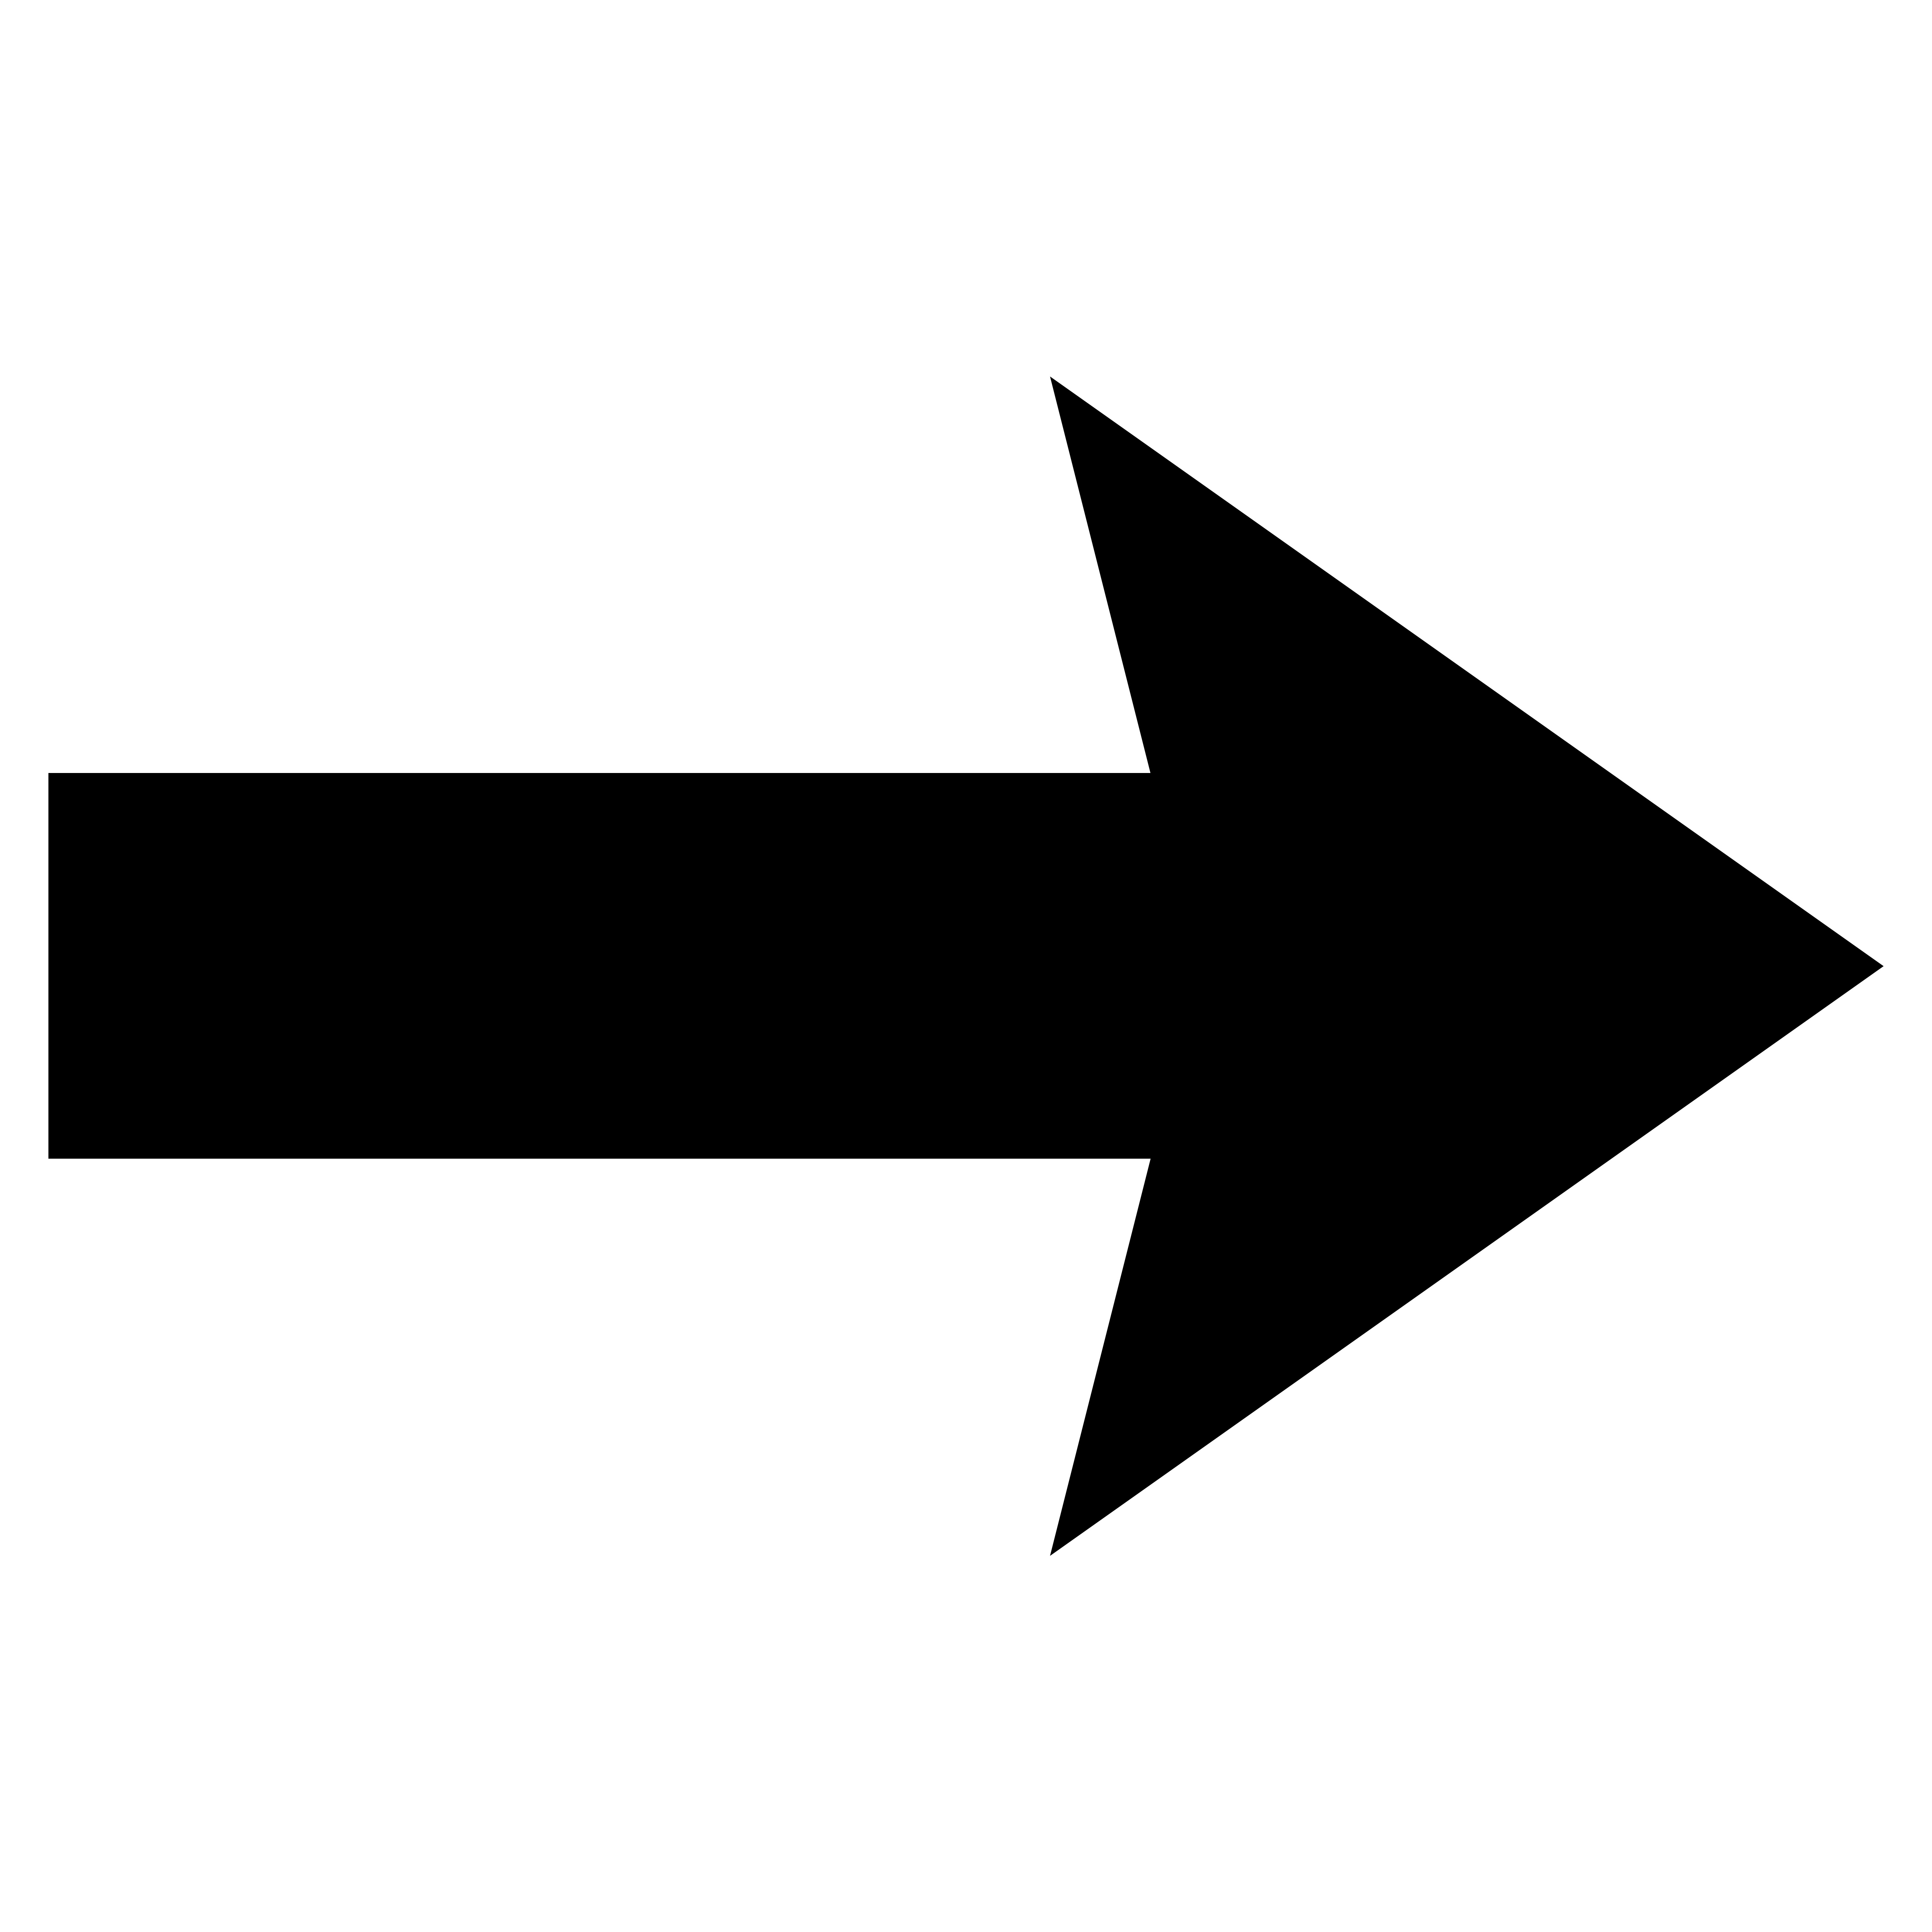 Long Black Arrow Facing Right Pictures to Pin on Pinterest ...